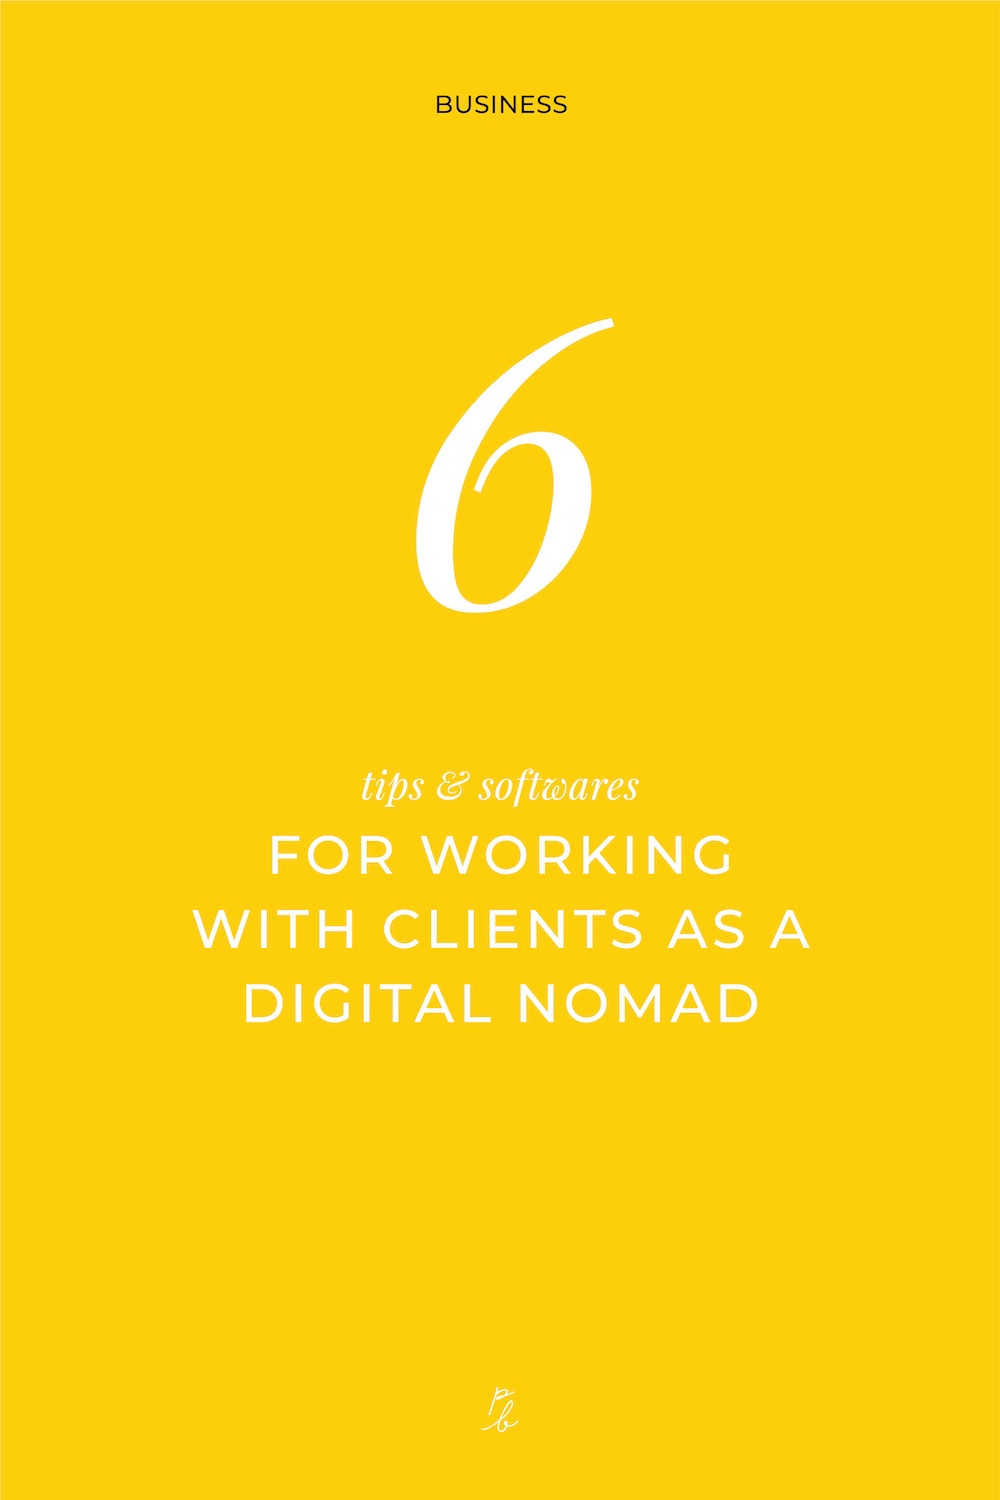 5-6 tips and softwares for working with clients as a digital nomad.jpg